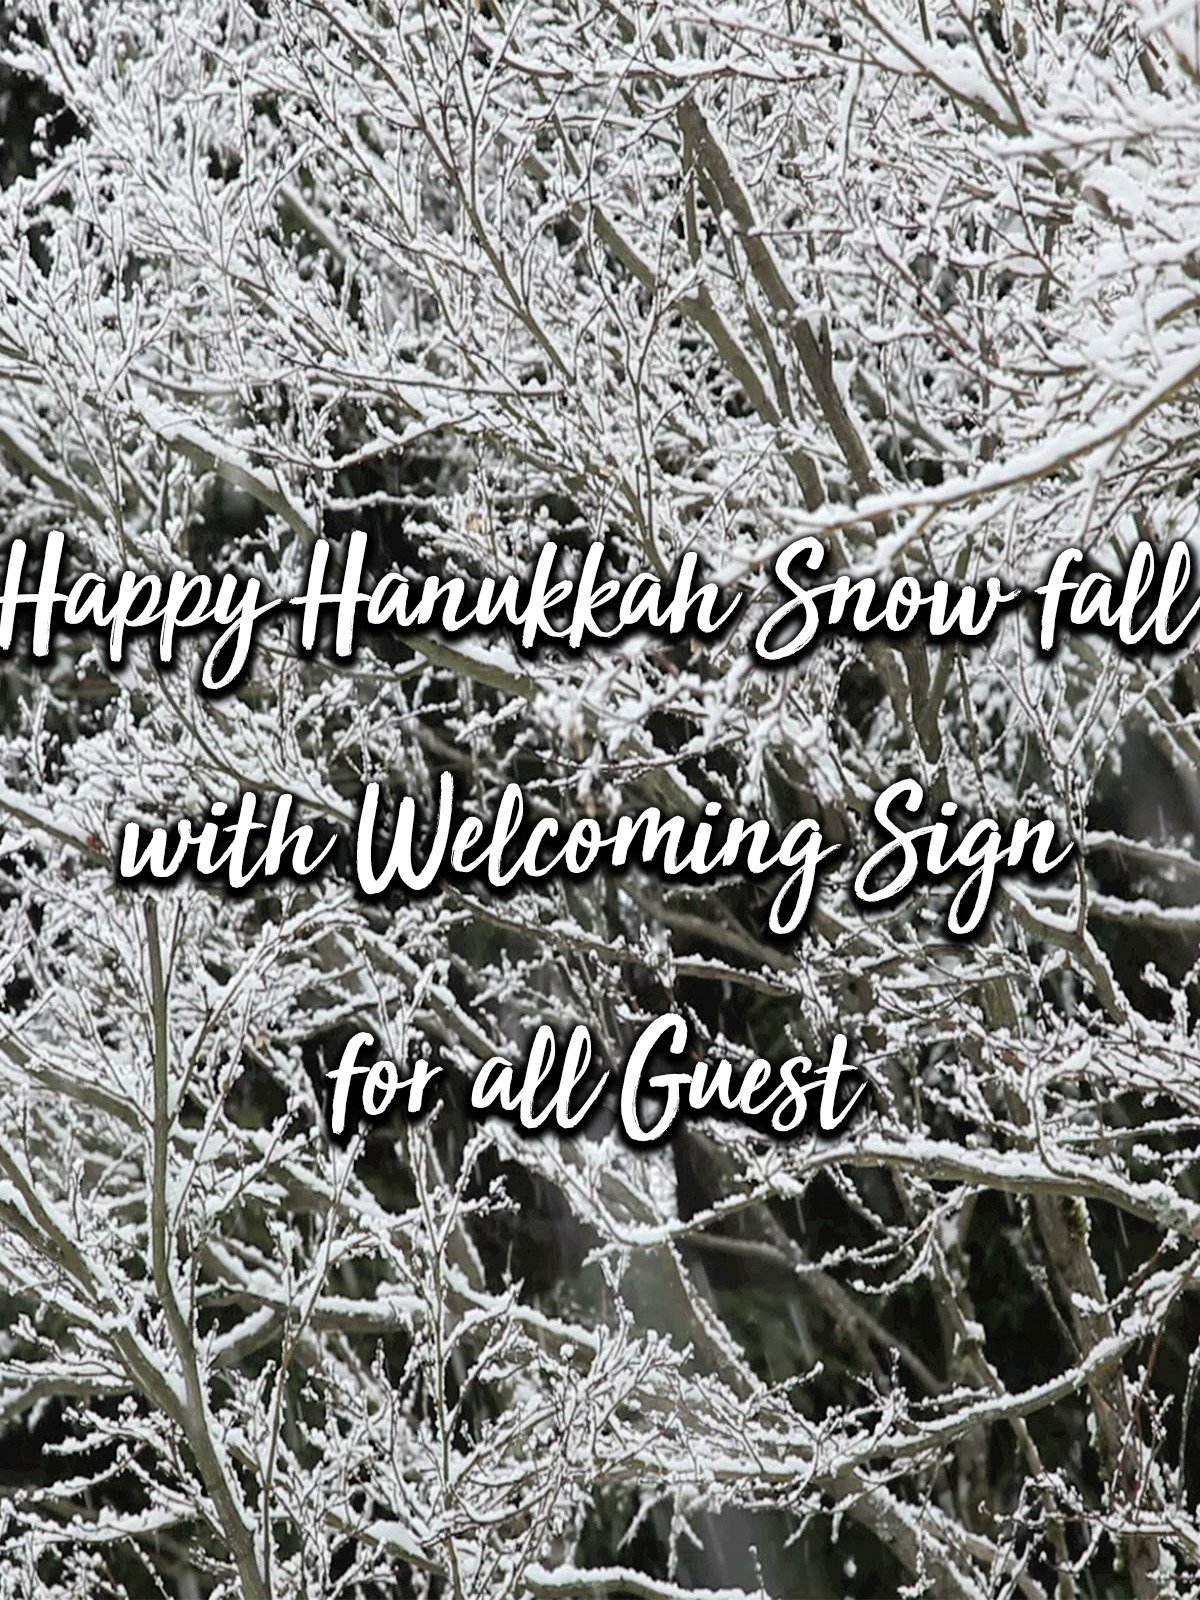 Happy Hanukkah Snow fall with Welcoming Sign for all Guest